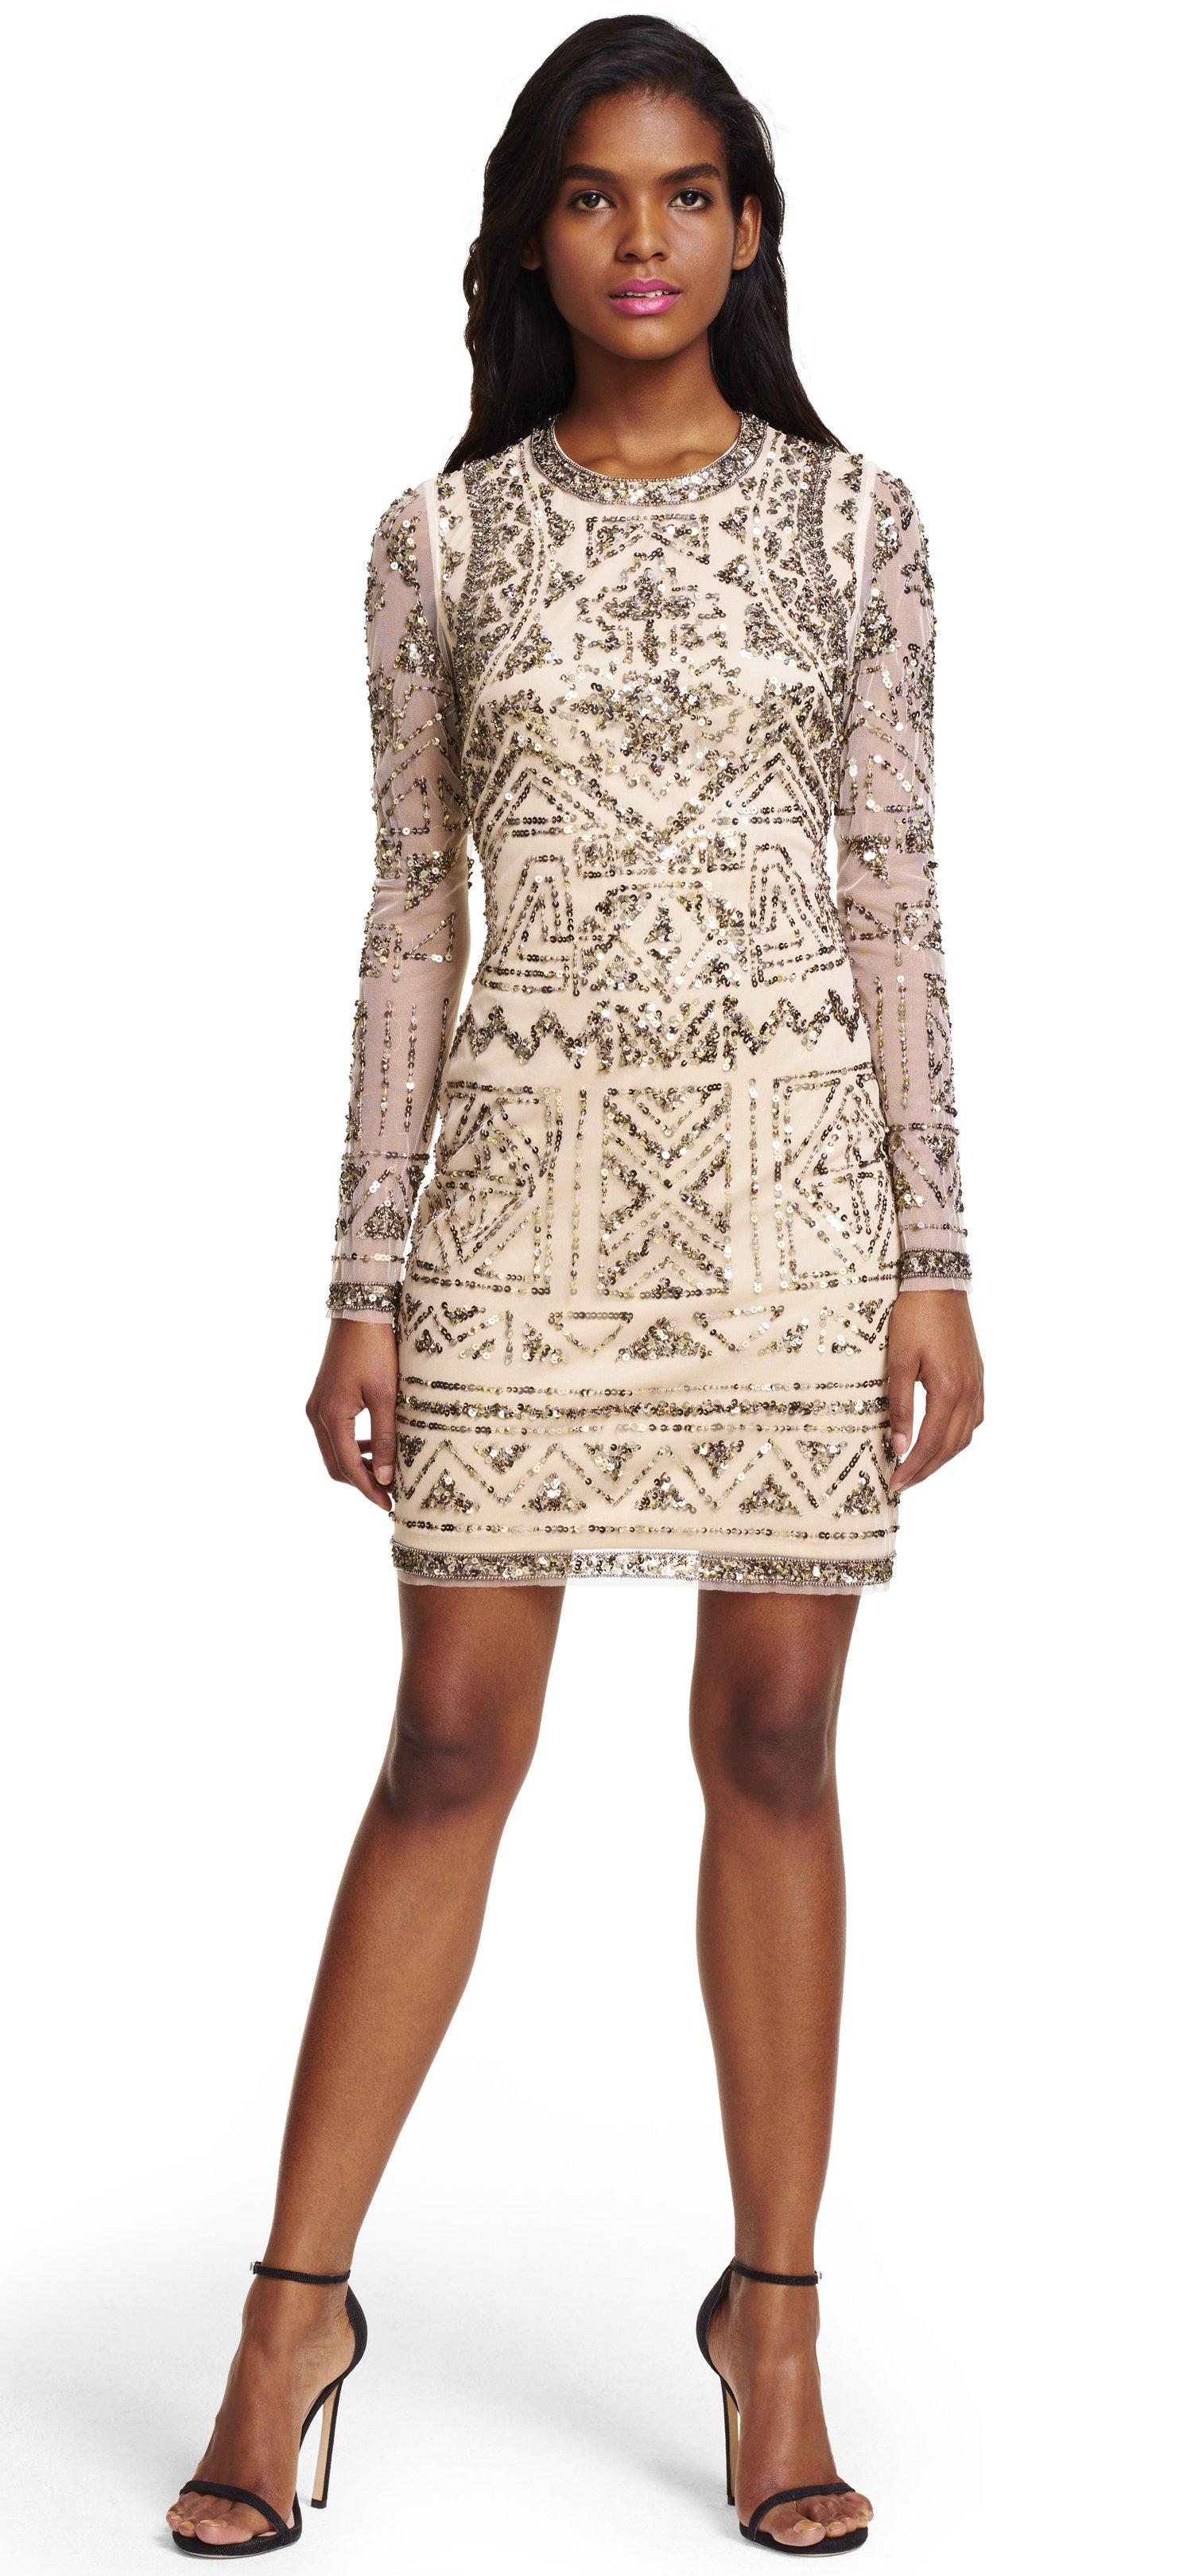 LONG SLEEVED COCKTAIL DRESSES ... long sleeve fully beaded cocktail dress ZTVVFGK